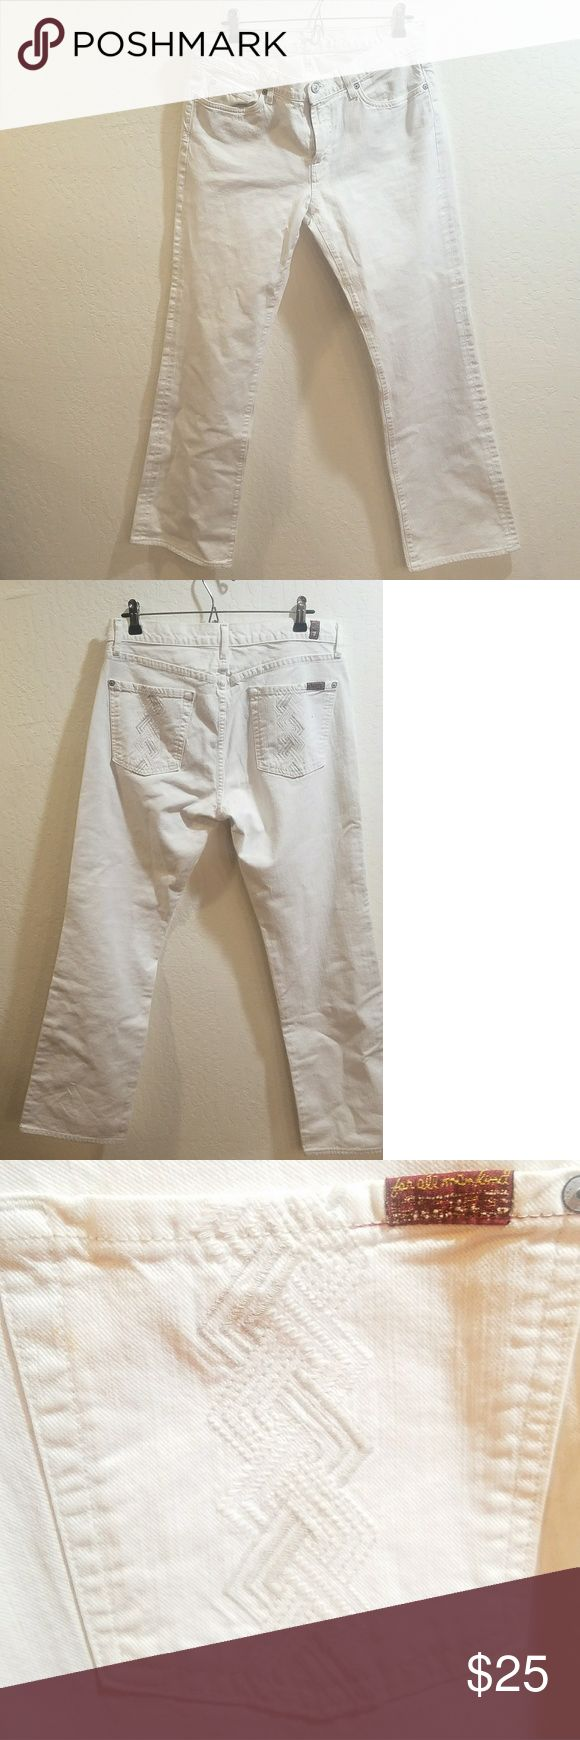 7 FOR ALL MANKIND - WHITE BOOTCUT JEANS These are awesome 7 For All Mankind white jeans. Size 33. Great condition. 7 For All Mankind Jeans Boot Cut